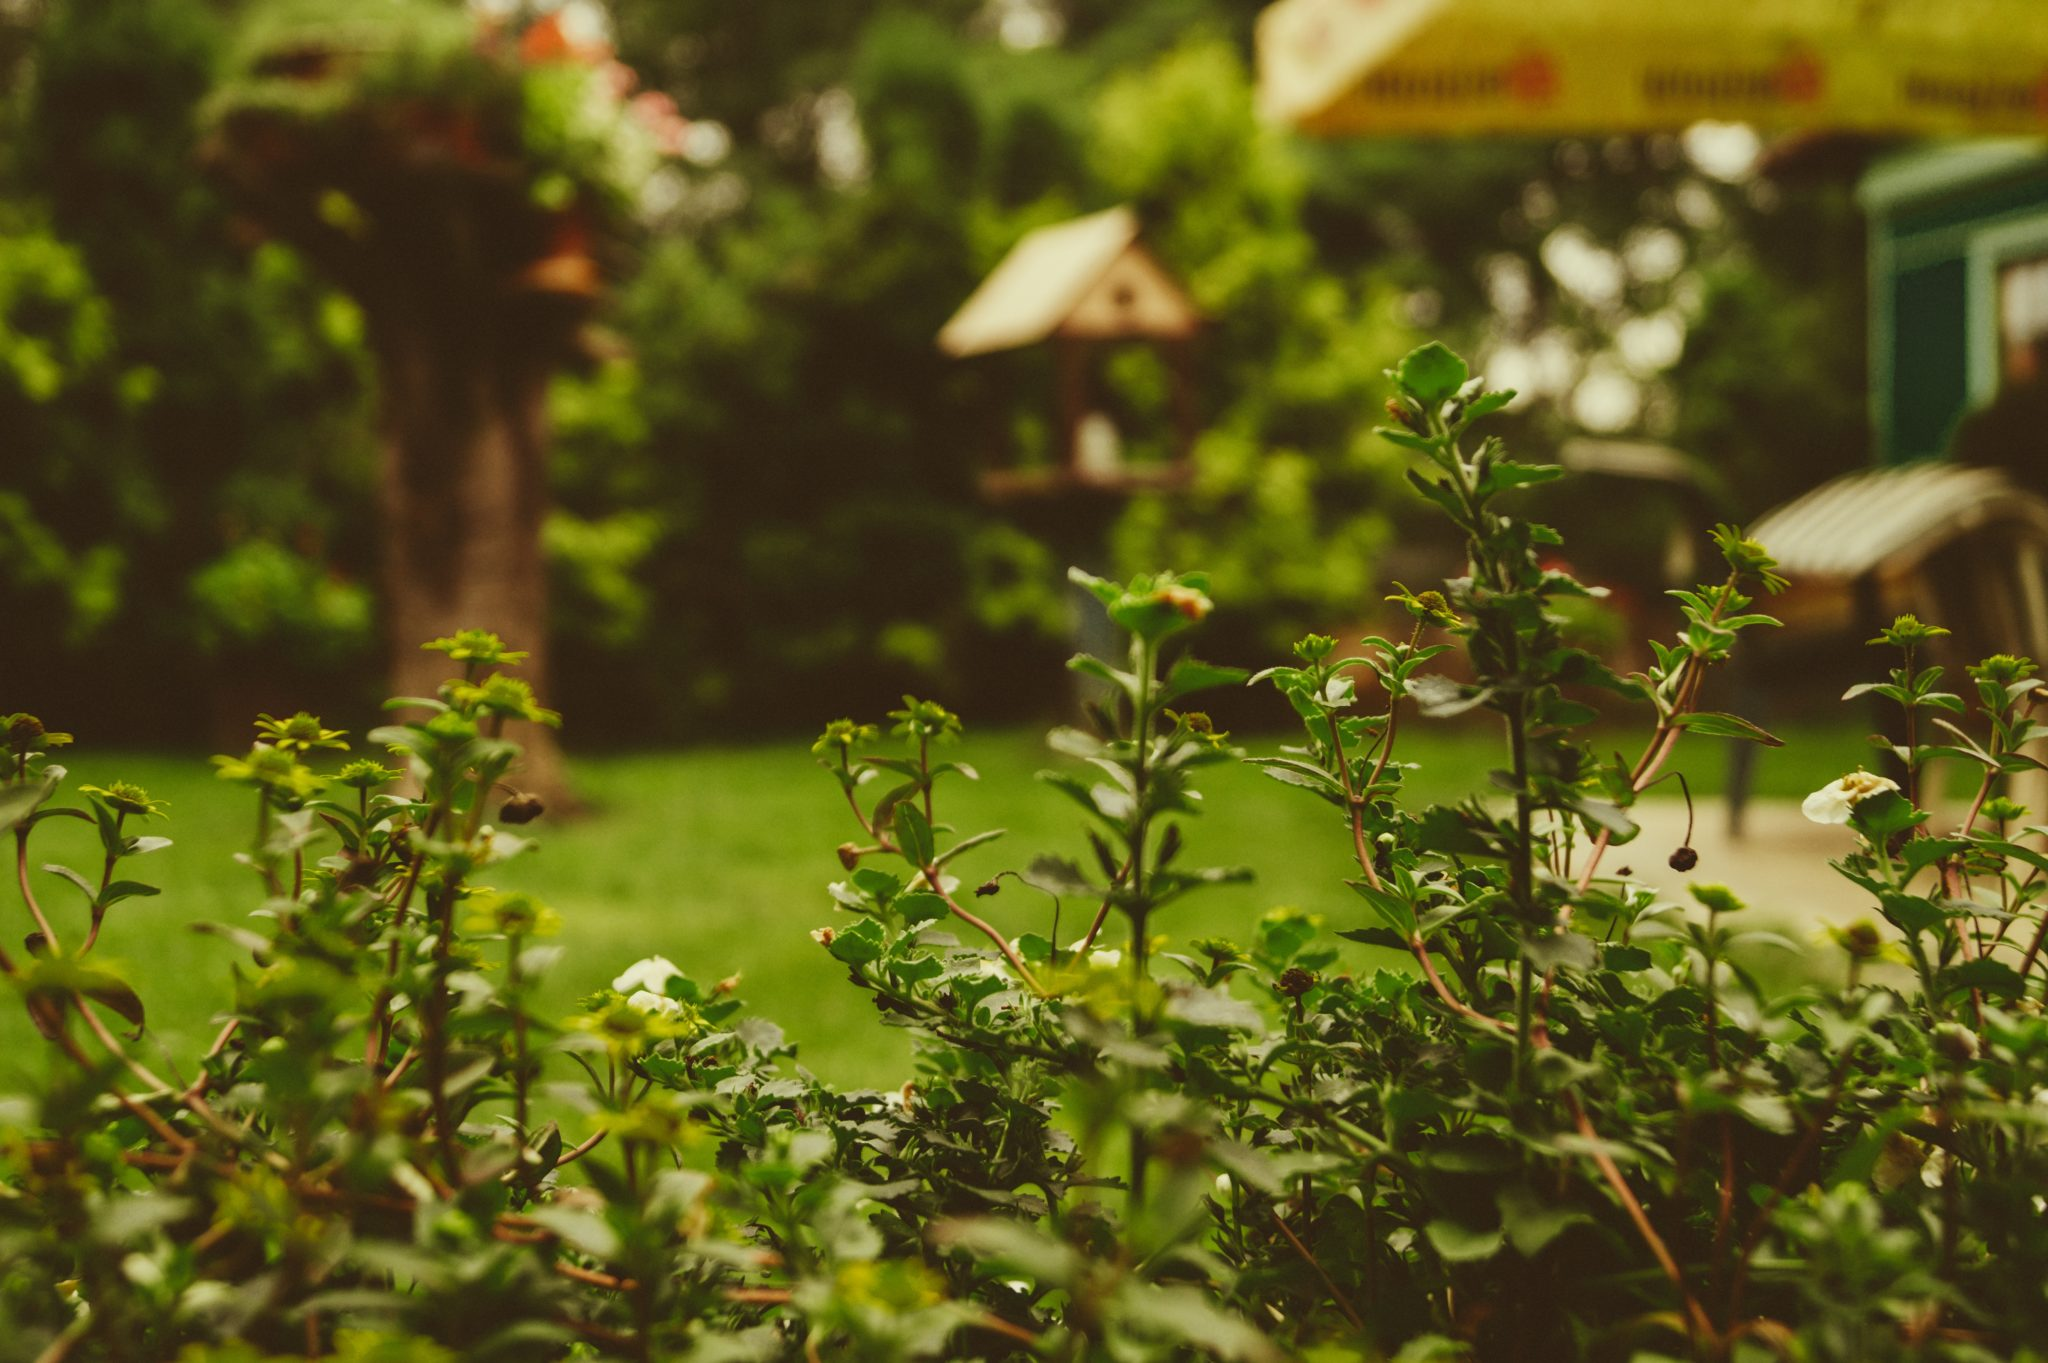 Getting your backyard party ready can seem to be an immense task. BUT you can get all you need to get done to host that outdoor BBQ quickly—and cheaply too. Most of these tips and ideas can be completed all in one weekend, if you're up for it. And why not knock them all out at once? Then you can celebrate. With a party. Tip one - clean up the backyard and clear a space